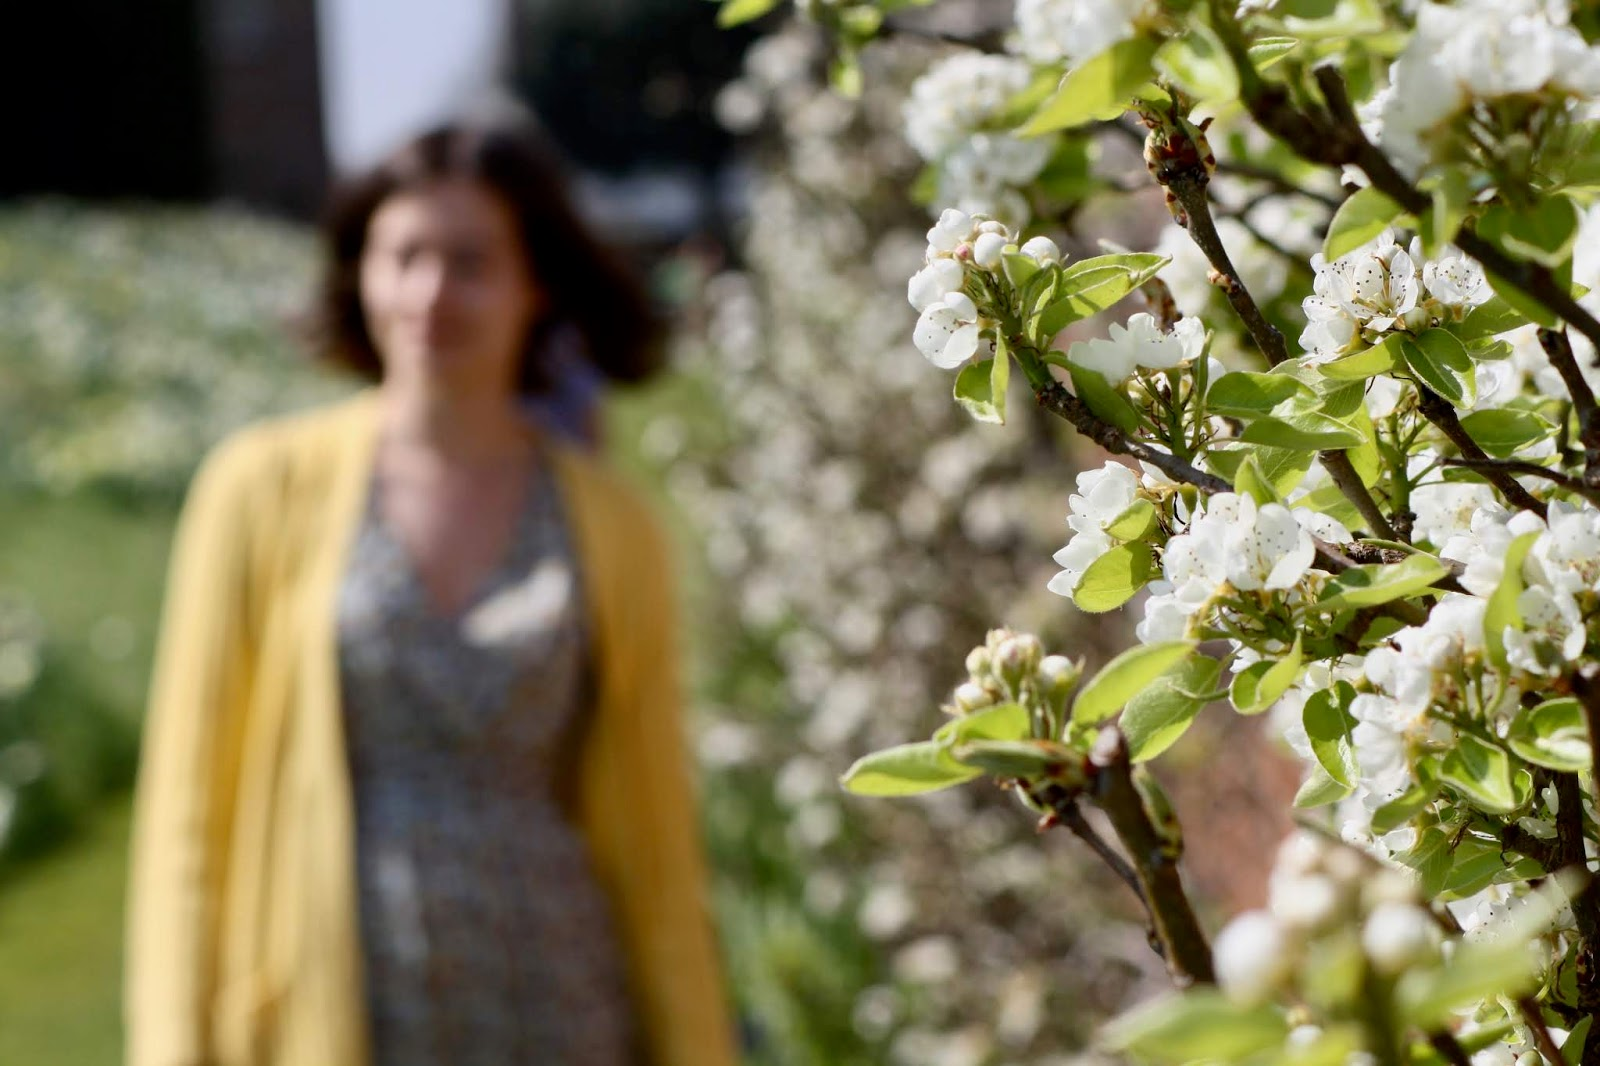 In the foreground, small white flowers and foliage, in the background Abbey stands just out of focus, wearing a dress and yellow cardigan